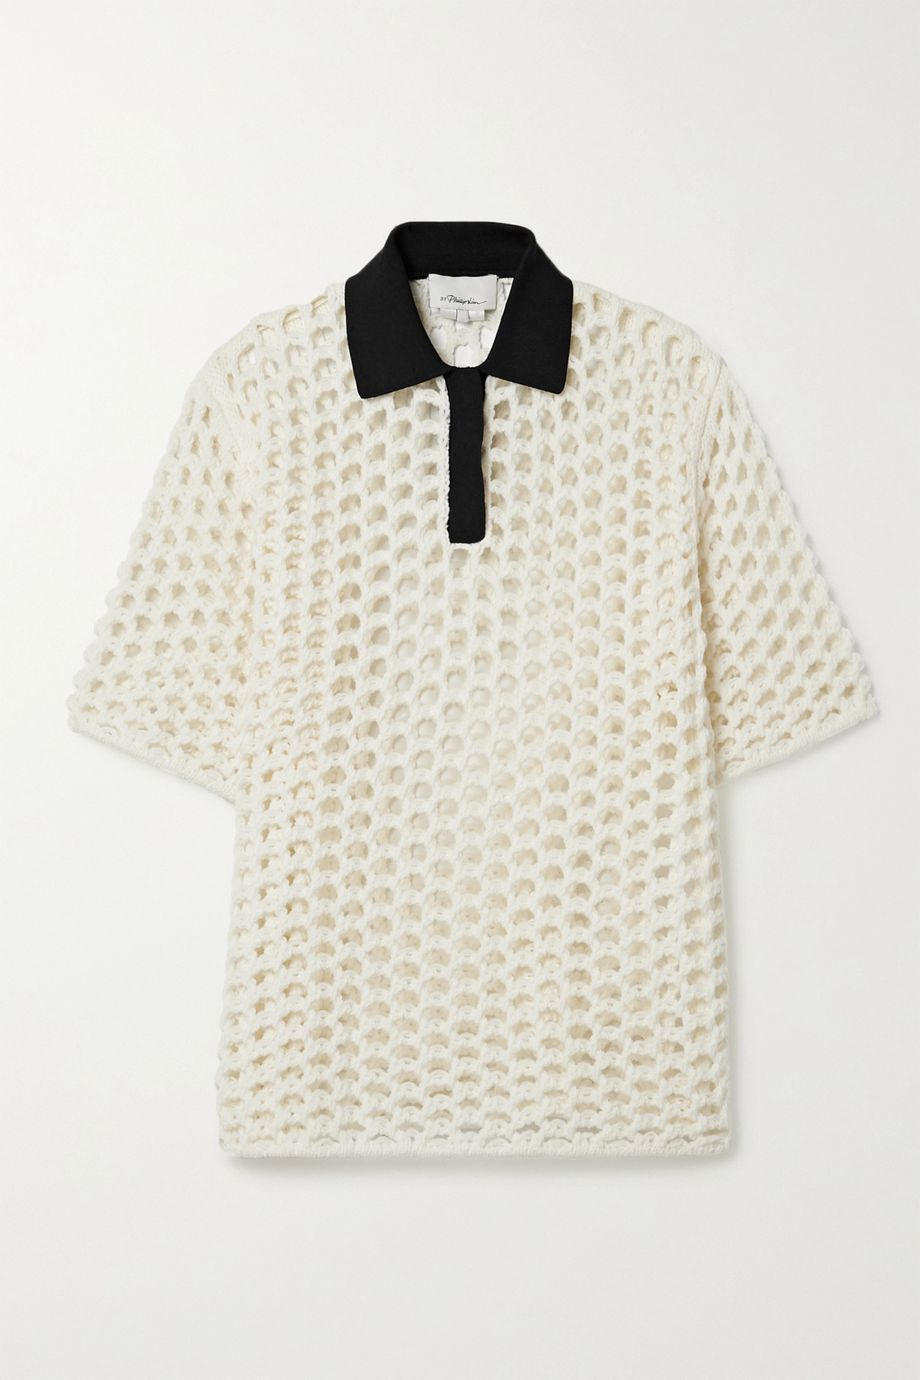 3.1 Phillip Lim Jersey-trimmed macramé wool top